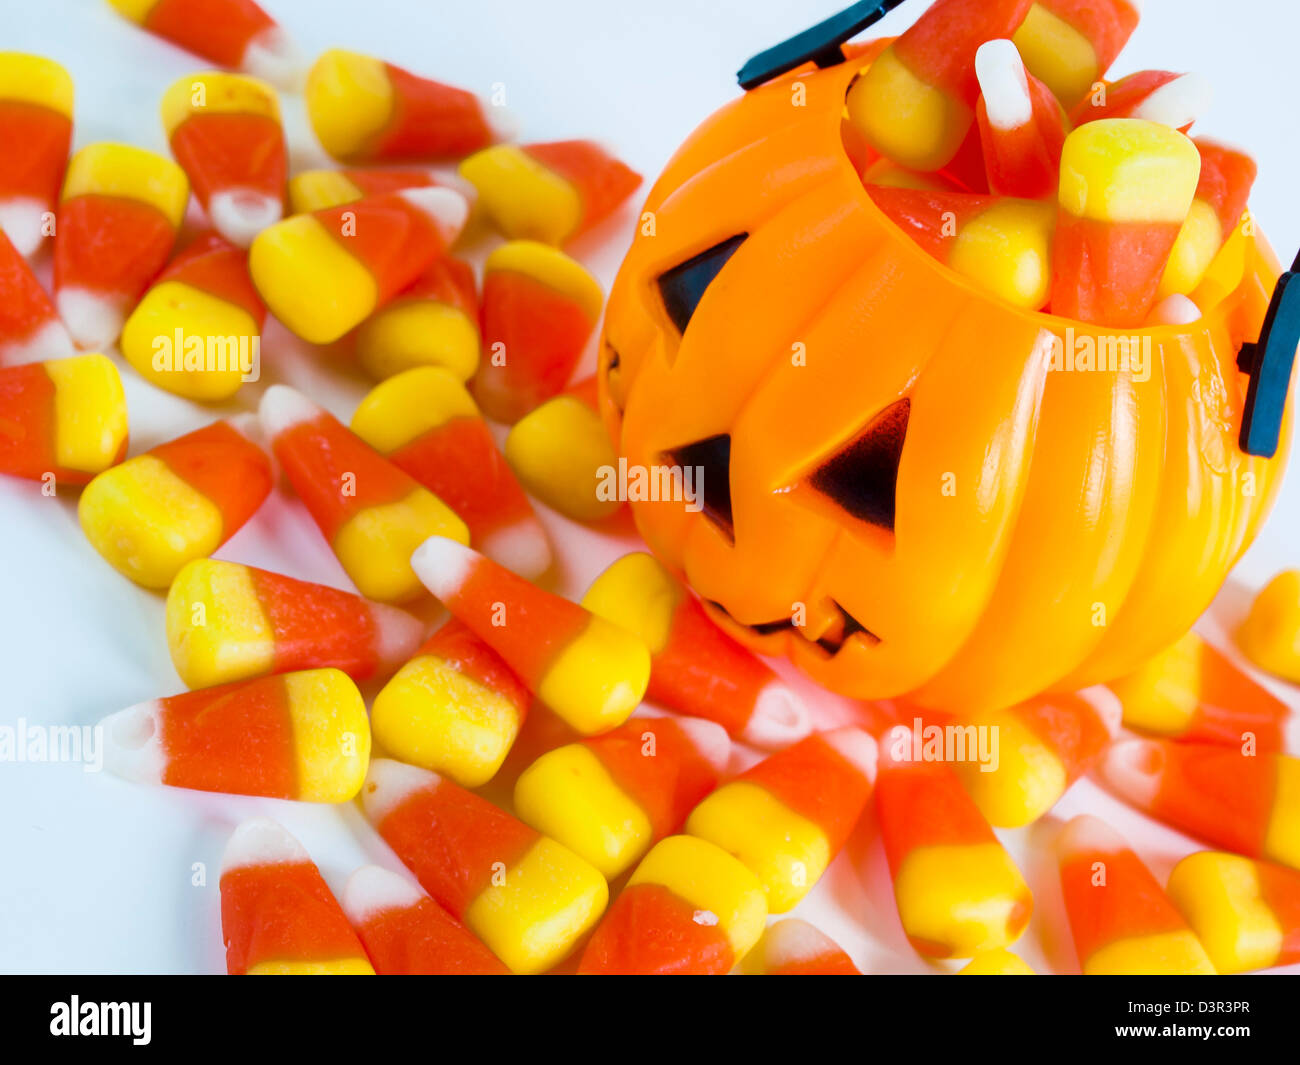 15/09/2021· weave in any loose ends (weaving up the sides where possible). Halloween Treat Bag Filled With Candy Corn Candies On White Background Stock Photo Alamy